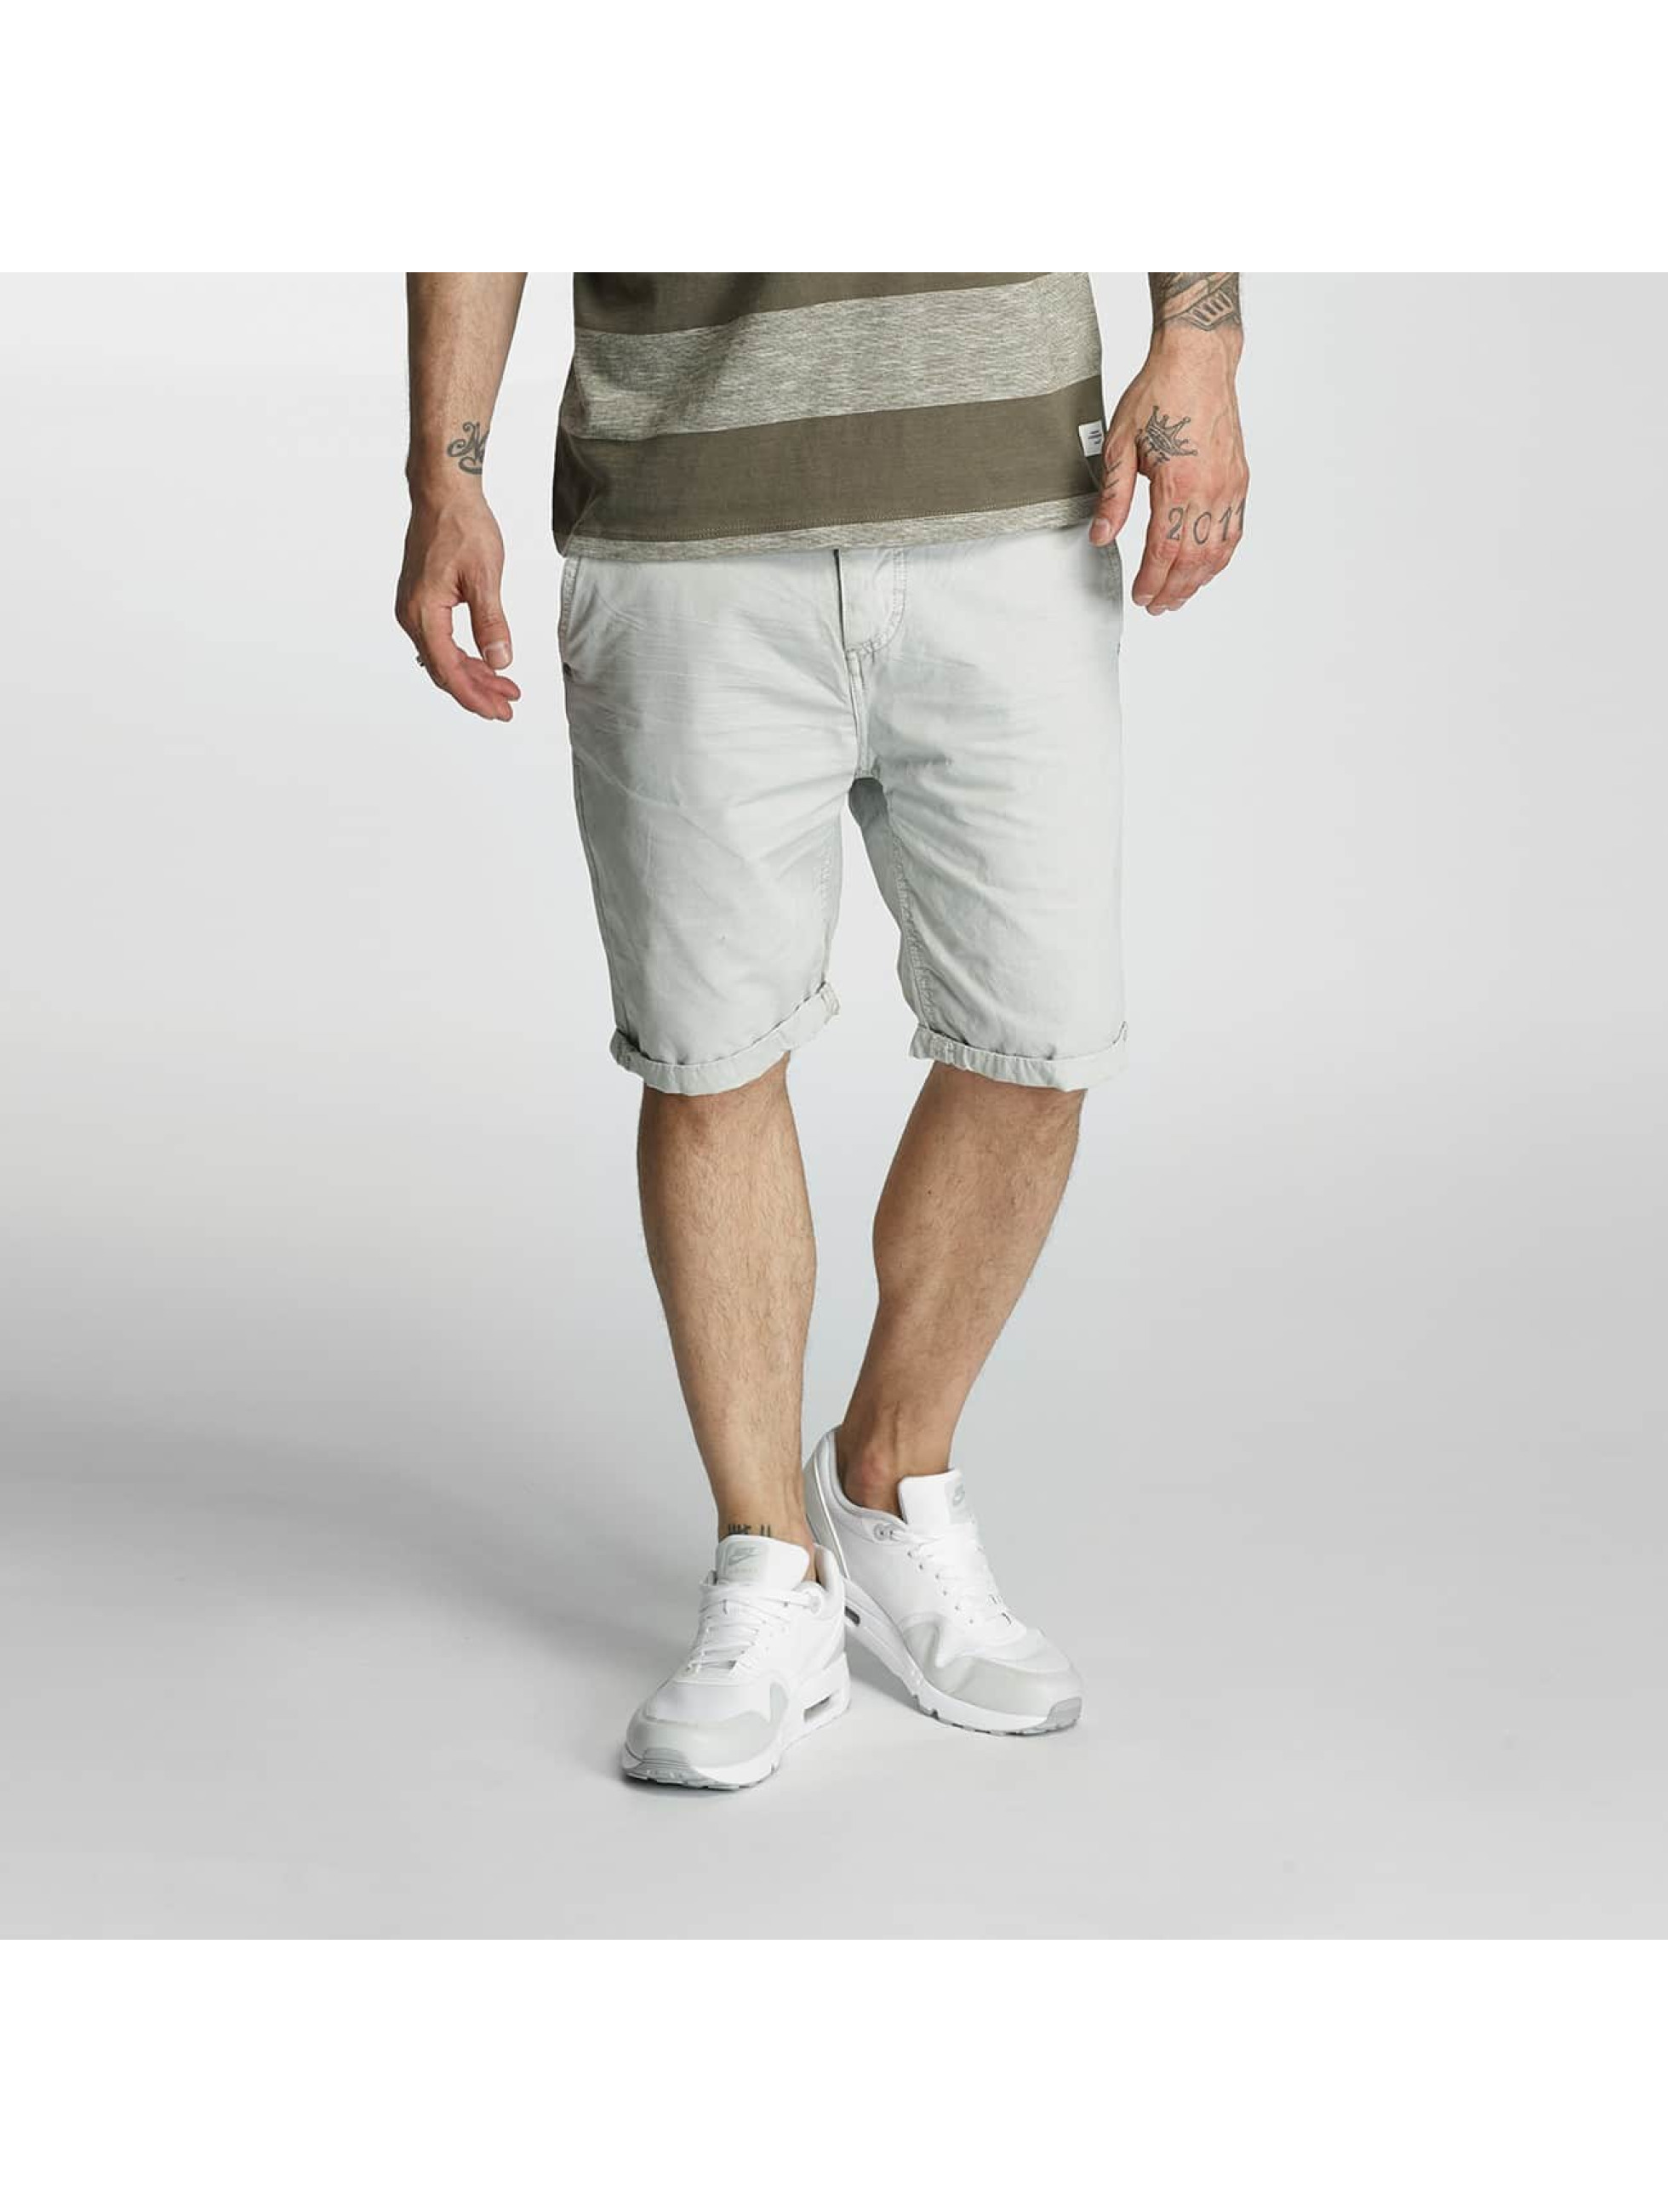 Urban Surface Männer Shorts Chino in grau